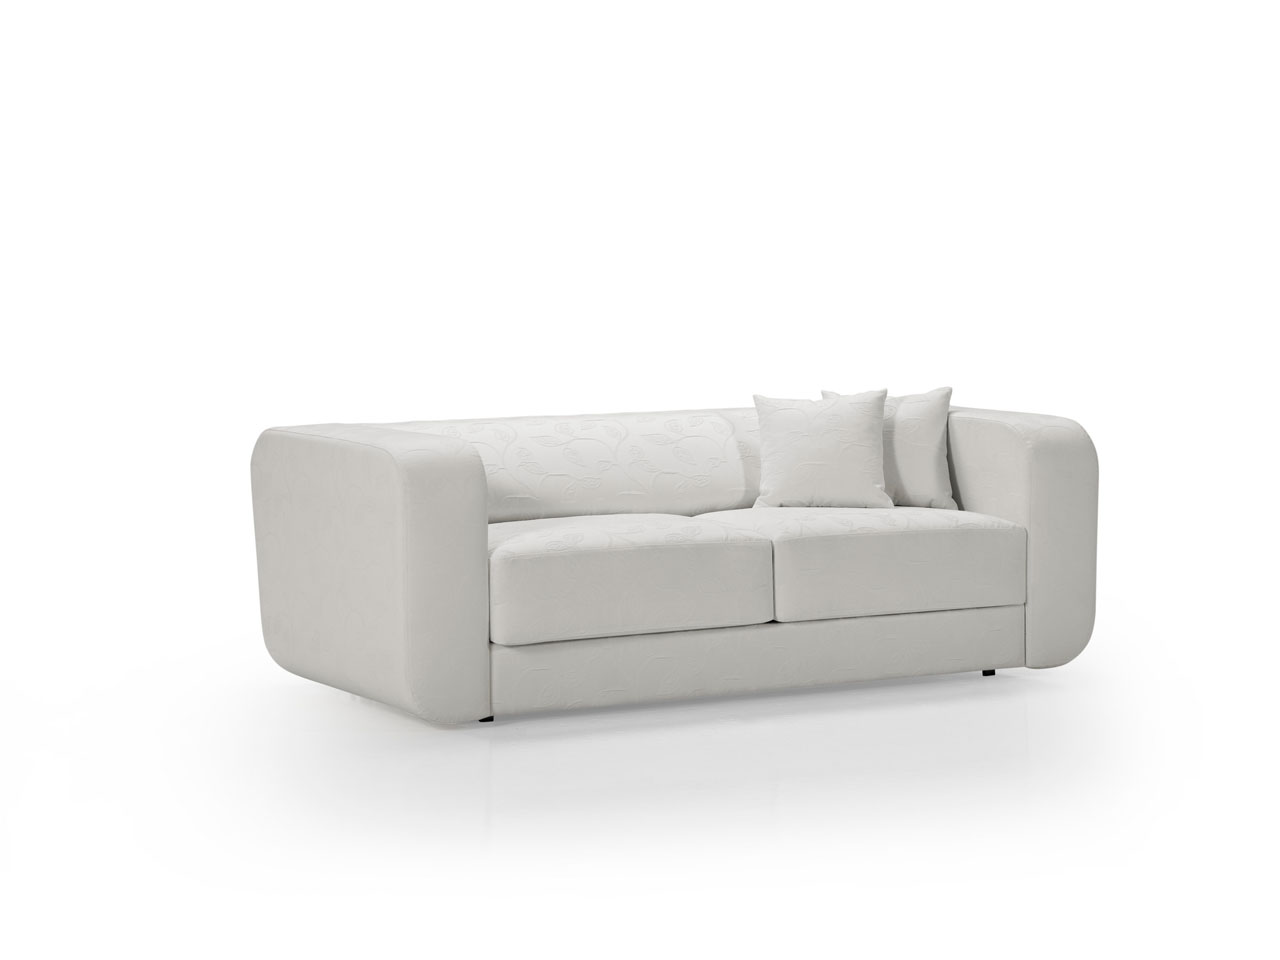 Sofas de diseo baratos luxury modern home furniture for Sofas de rinconera baratos